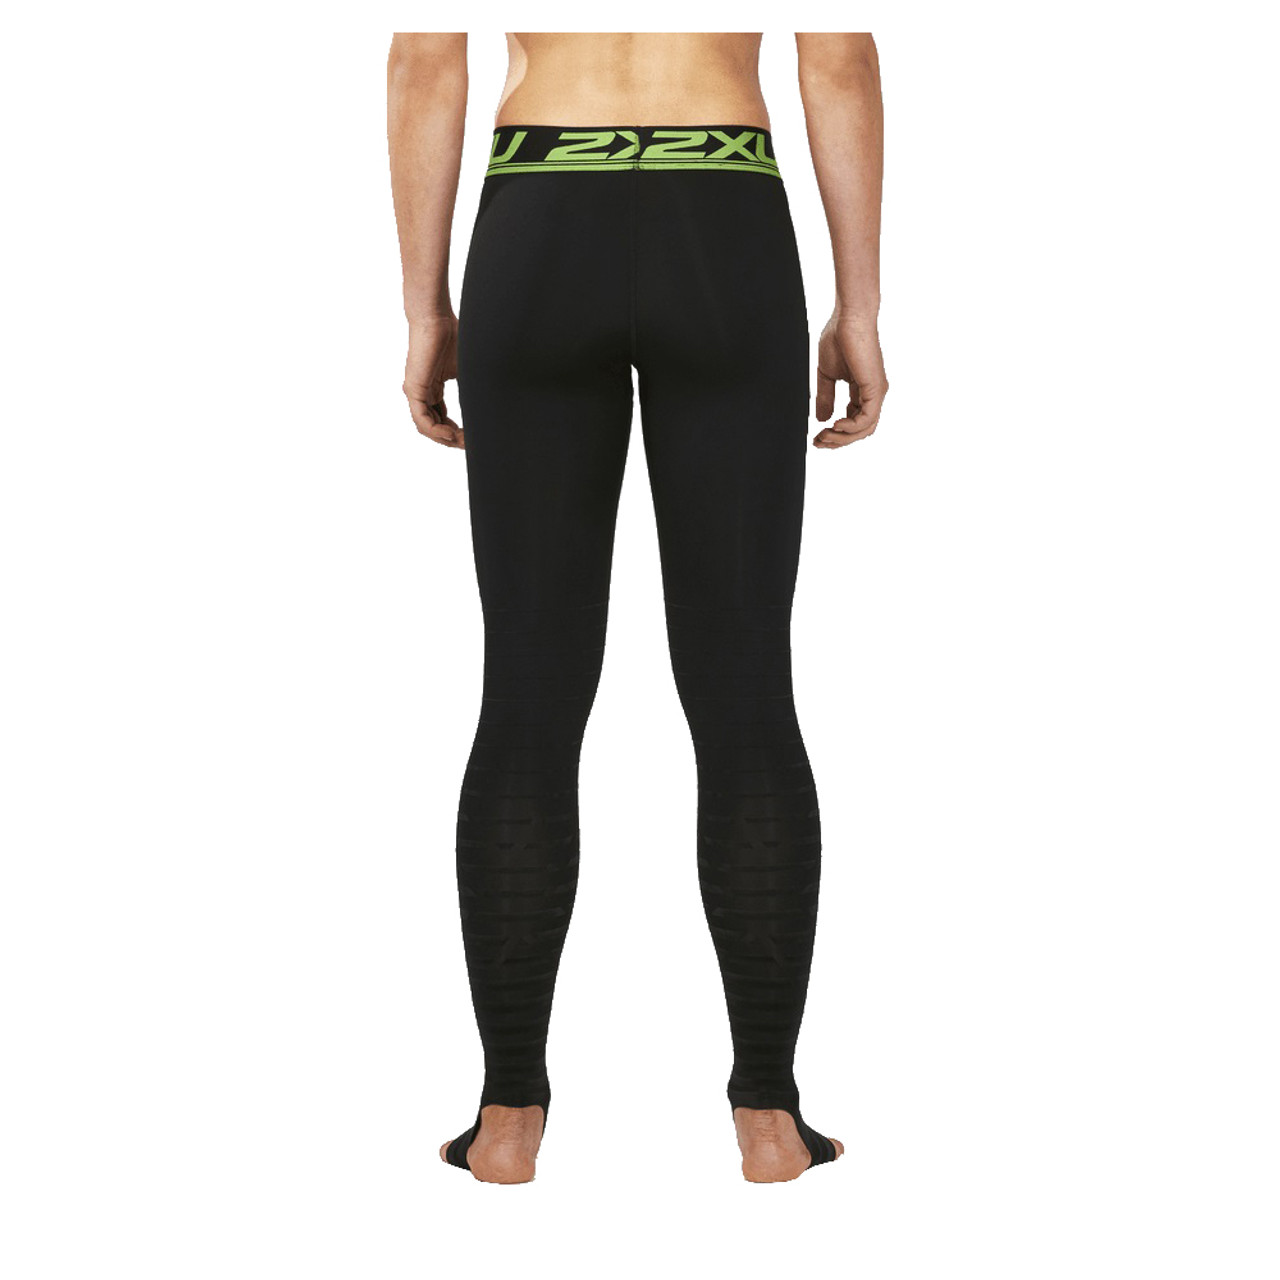 f6bca24d5eca74 ... 2XU Women's Power Recovery Compression Tights - Back